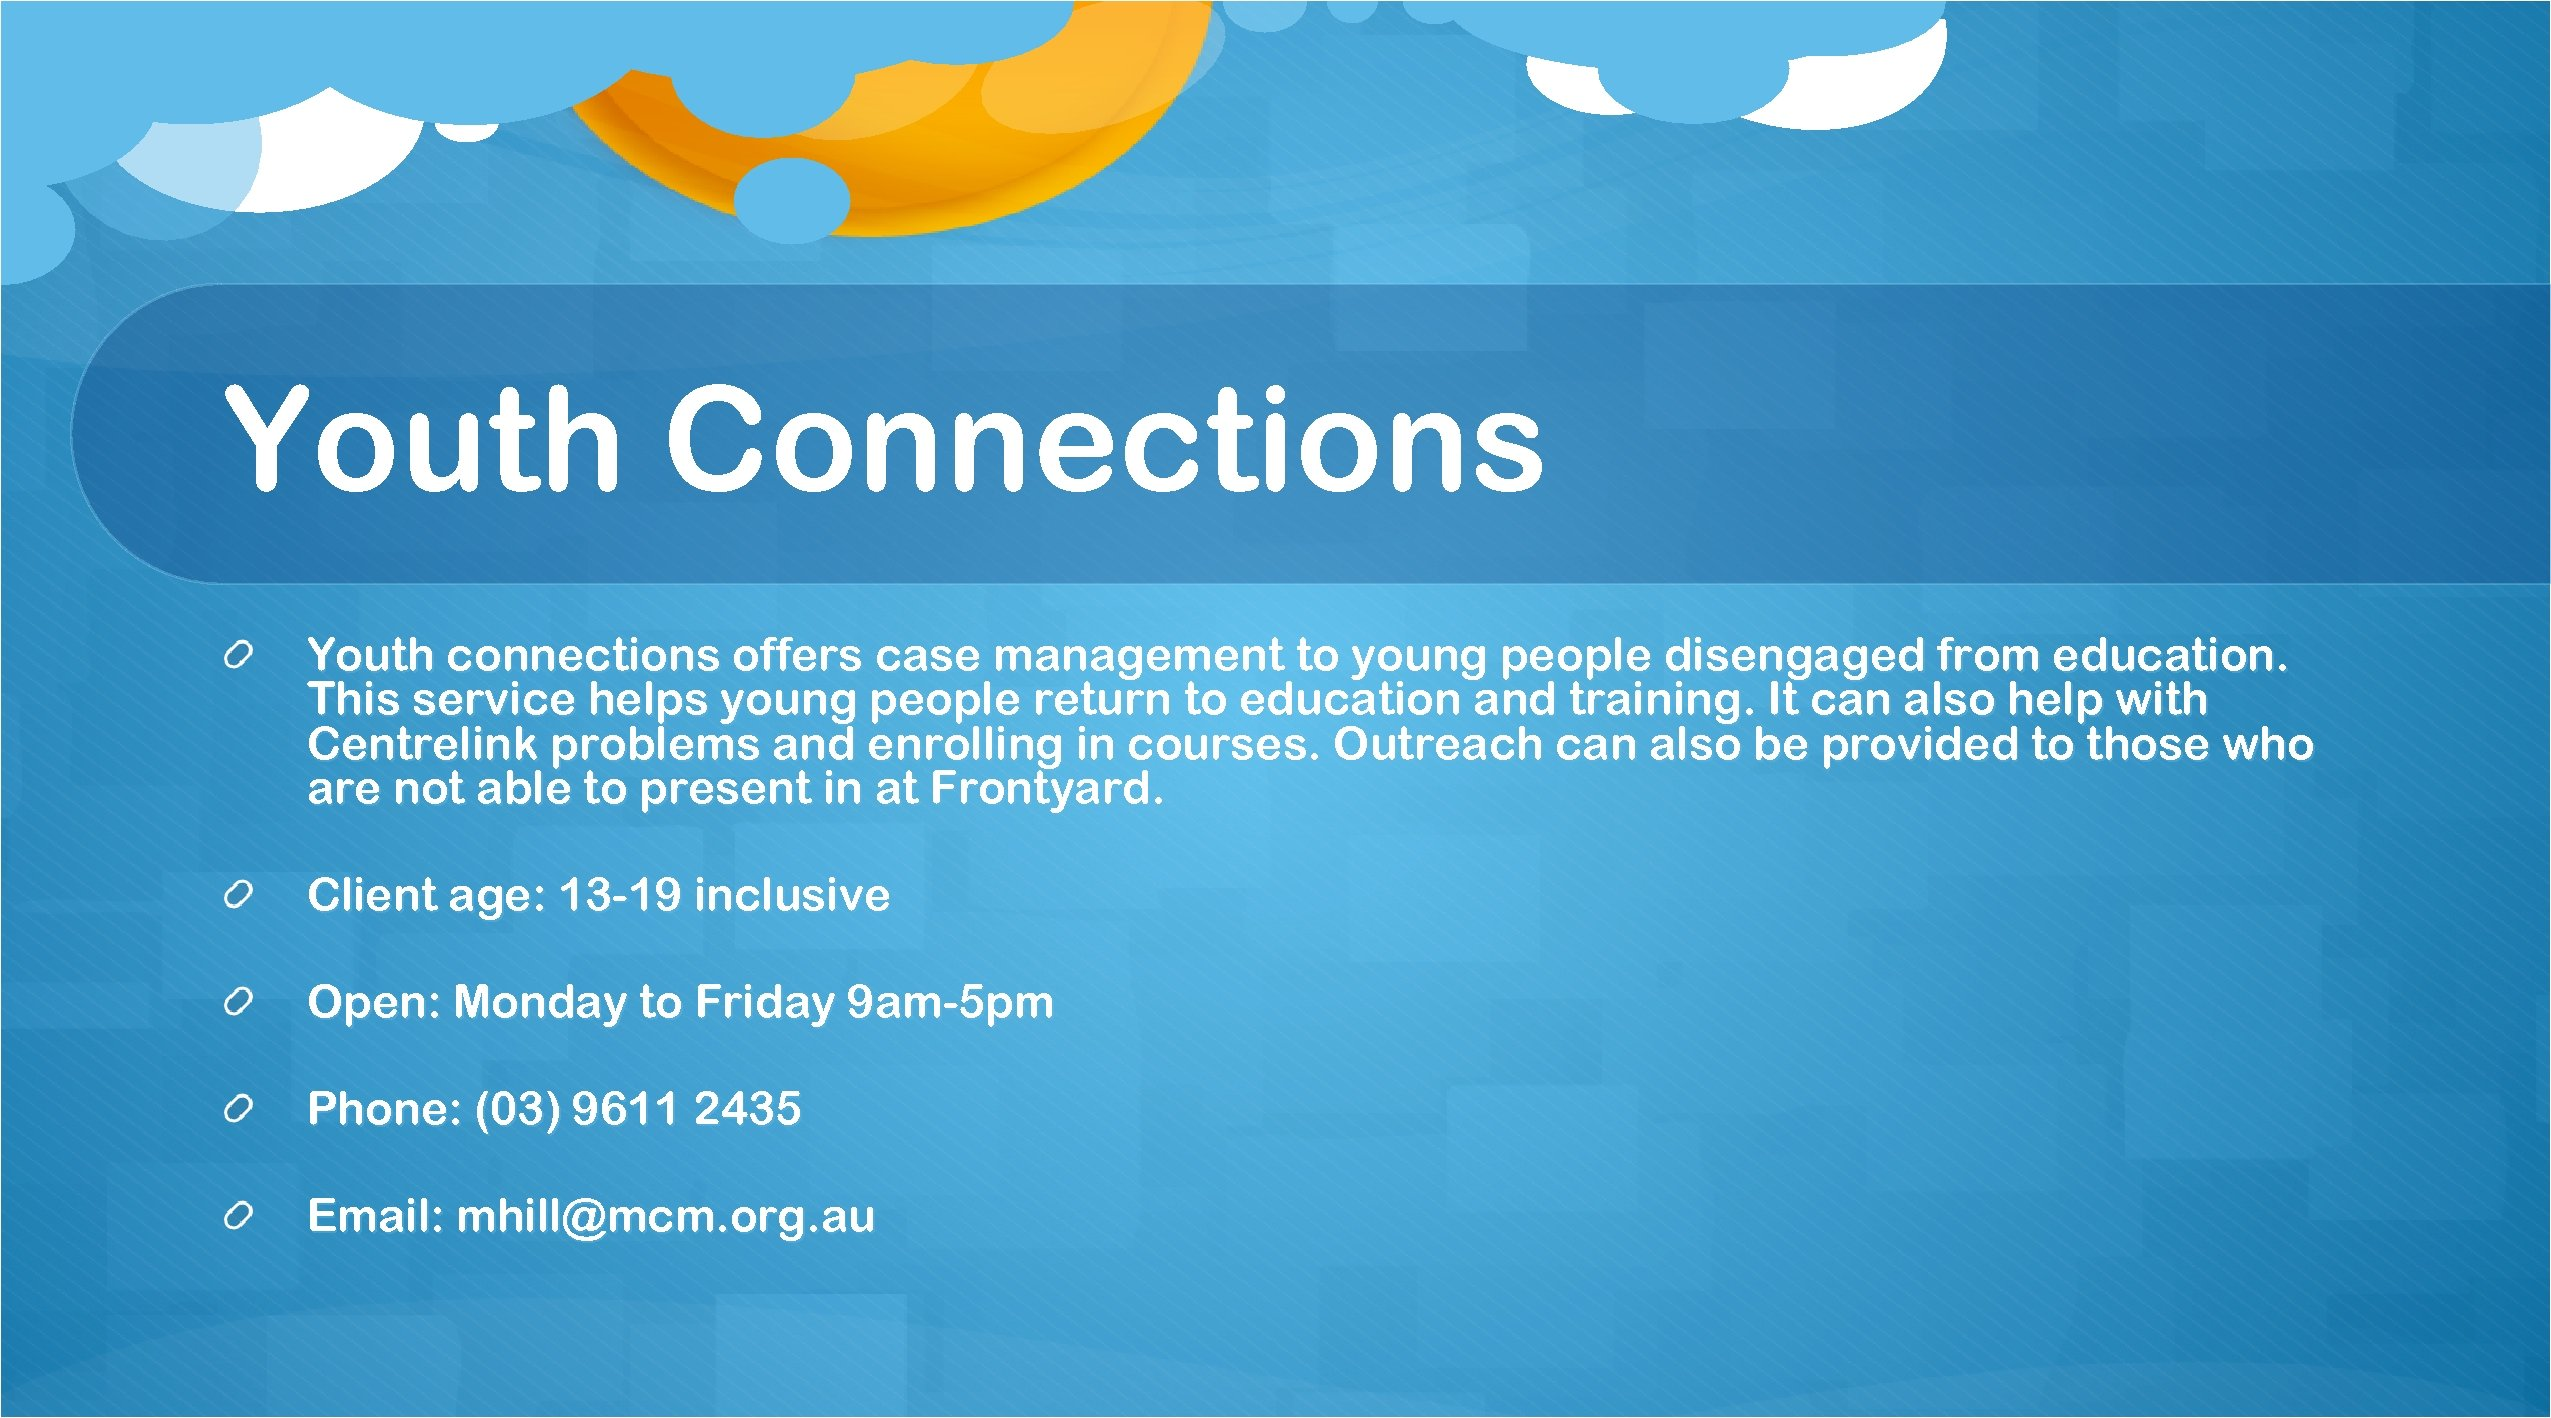 Youth Connections Youth connections offers case management to young people disengaged from education. This